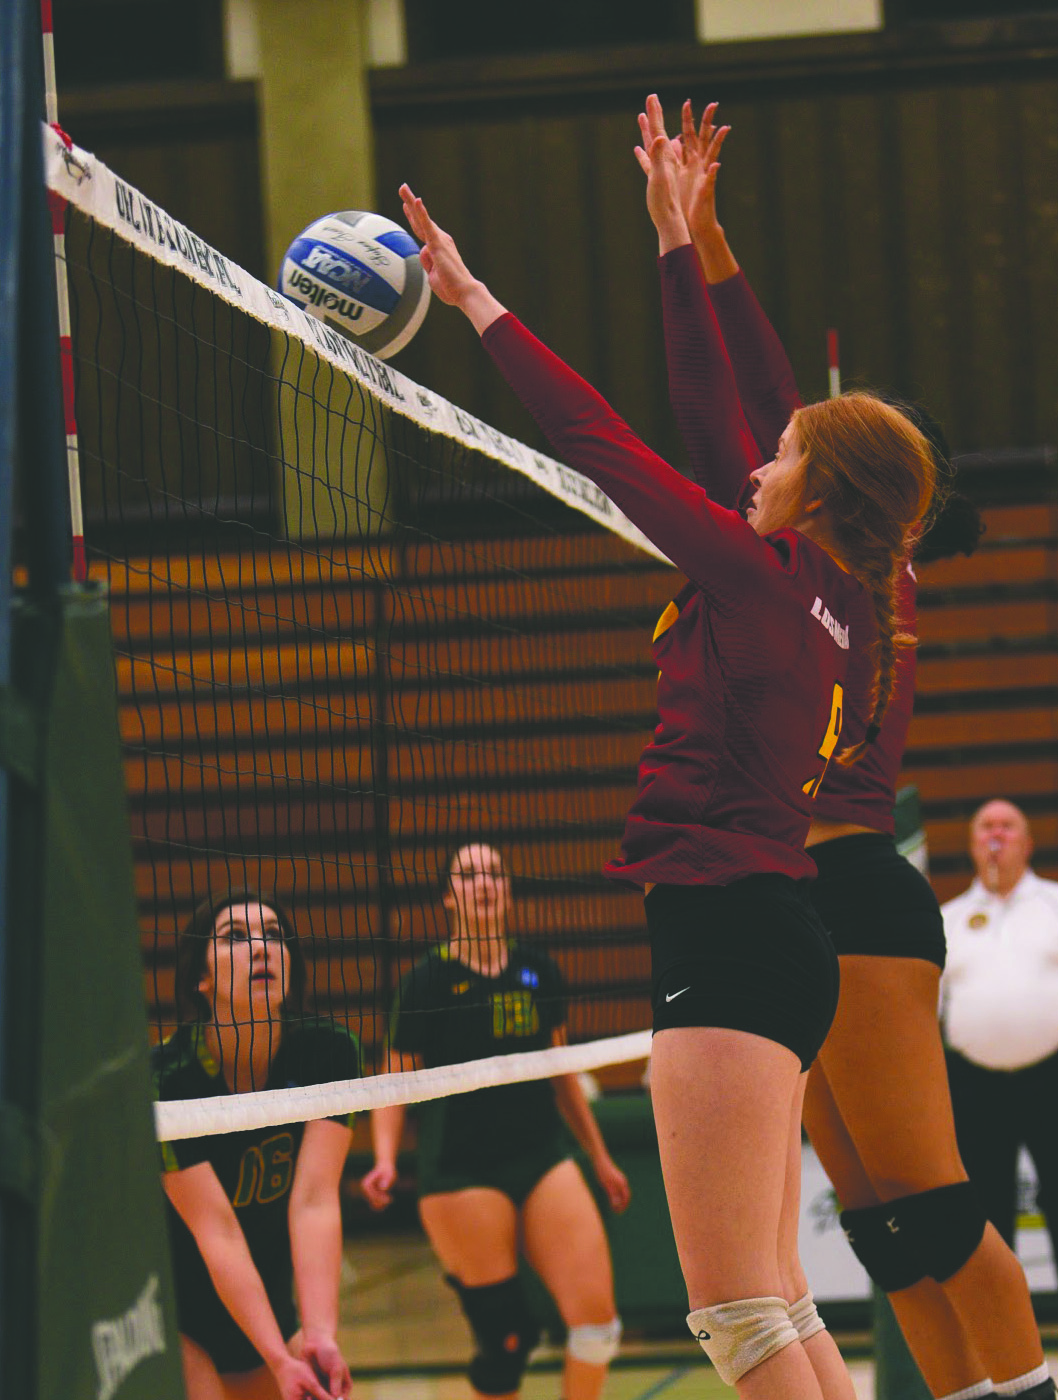 Emily Sobolik blocks the ball from entering her side of the court.